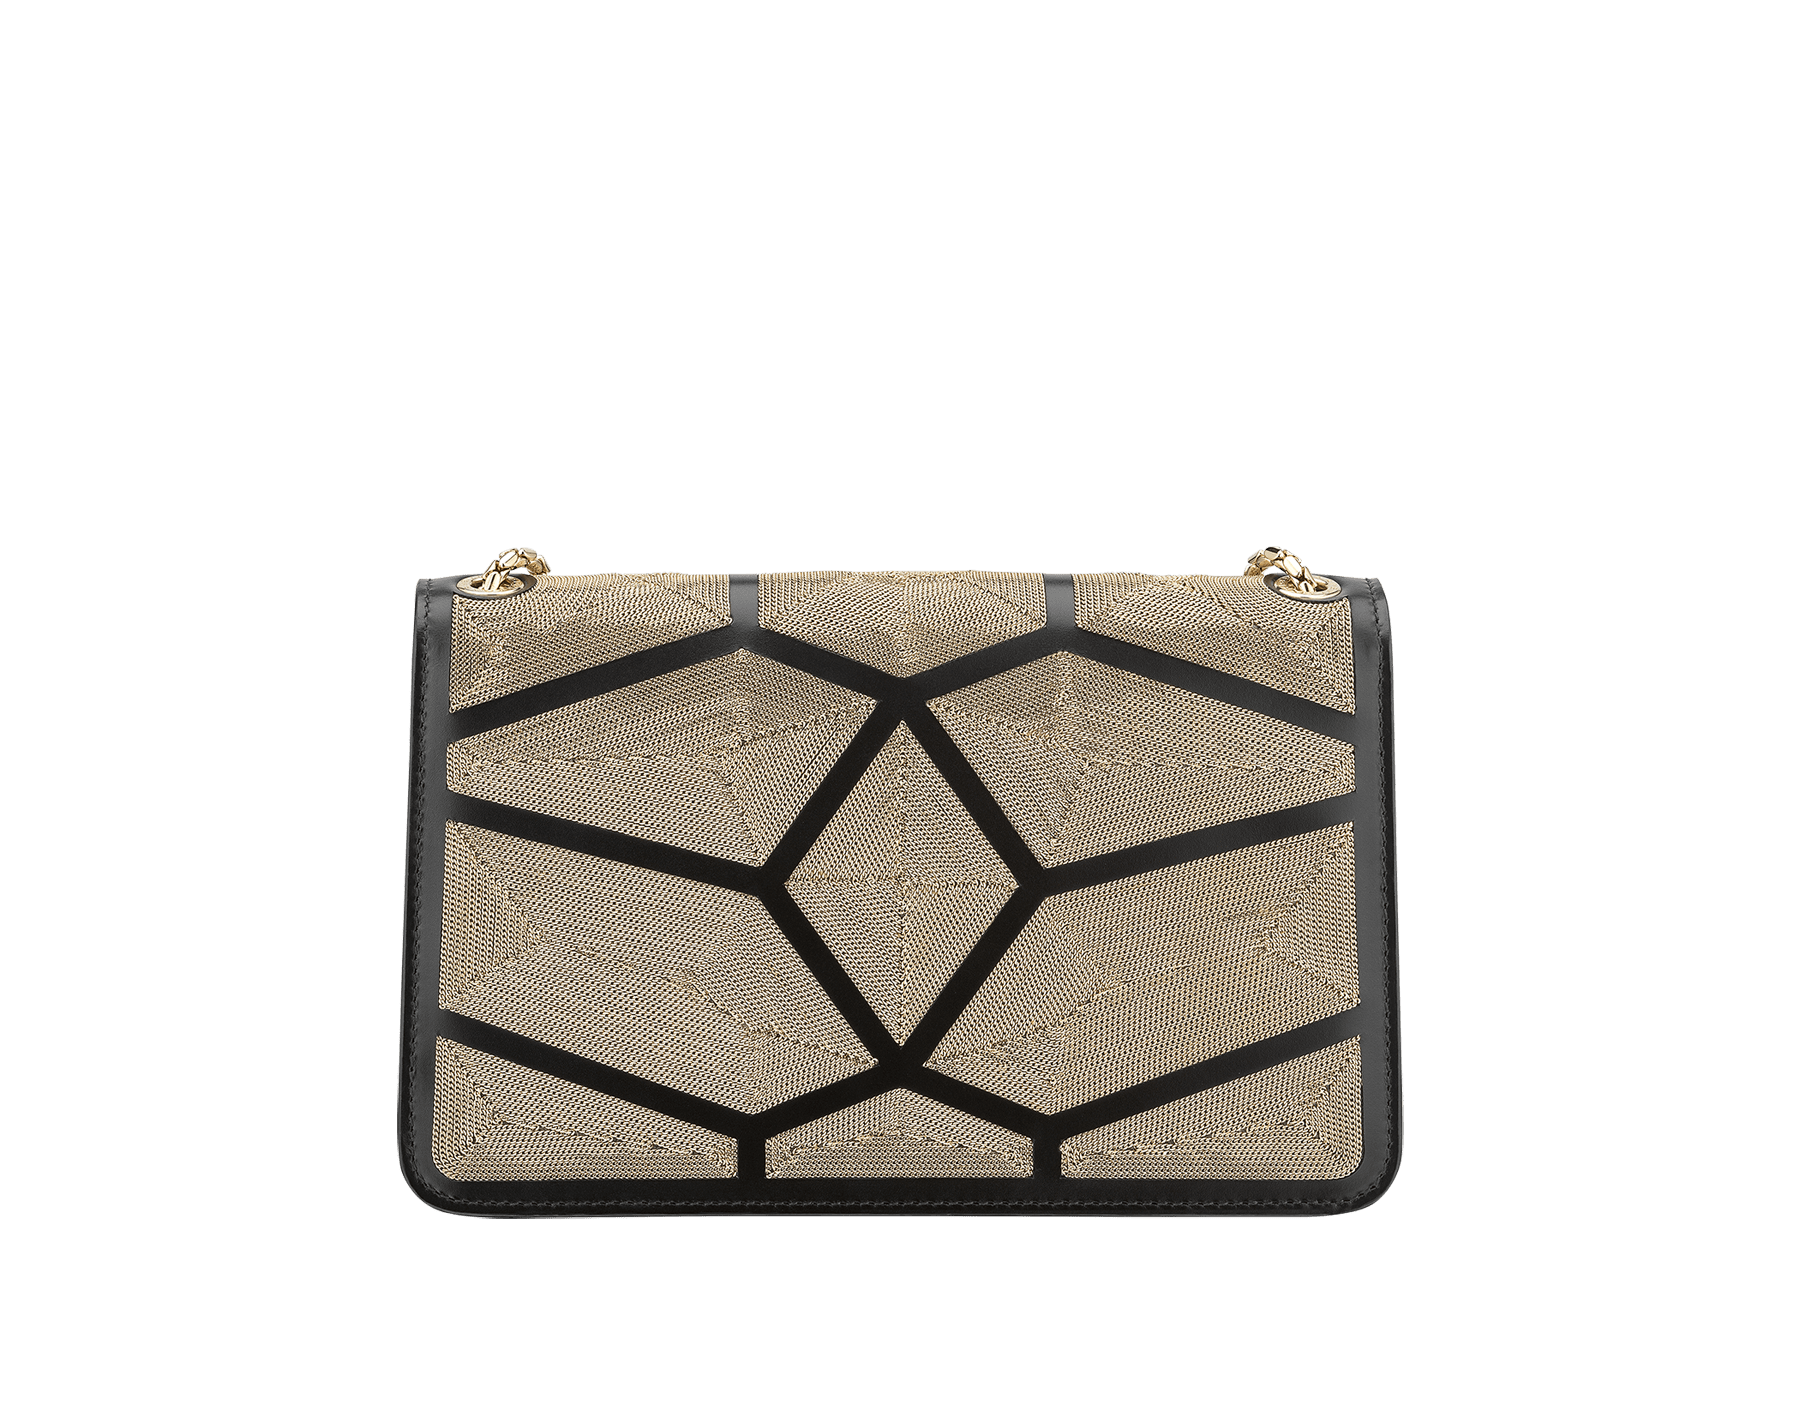 """Serpenti Forever"" crossbody bag in black calf leather with a Million Chain motif. Iconic snake head closure in light gold plated brass enriched with black enamel and black onyx eyes. 288909 image 3"